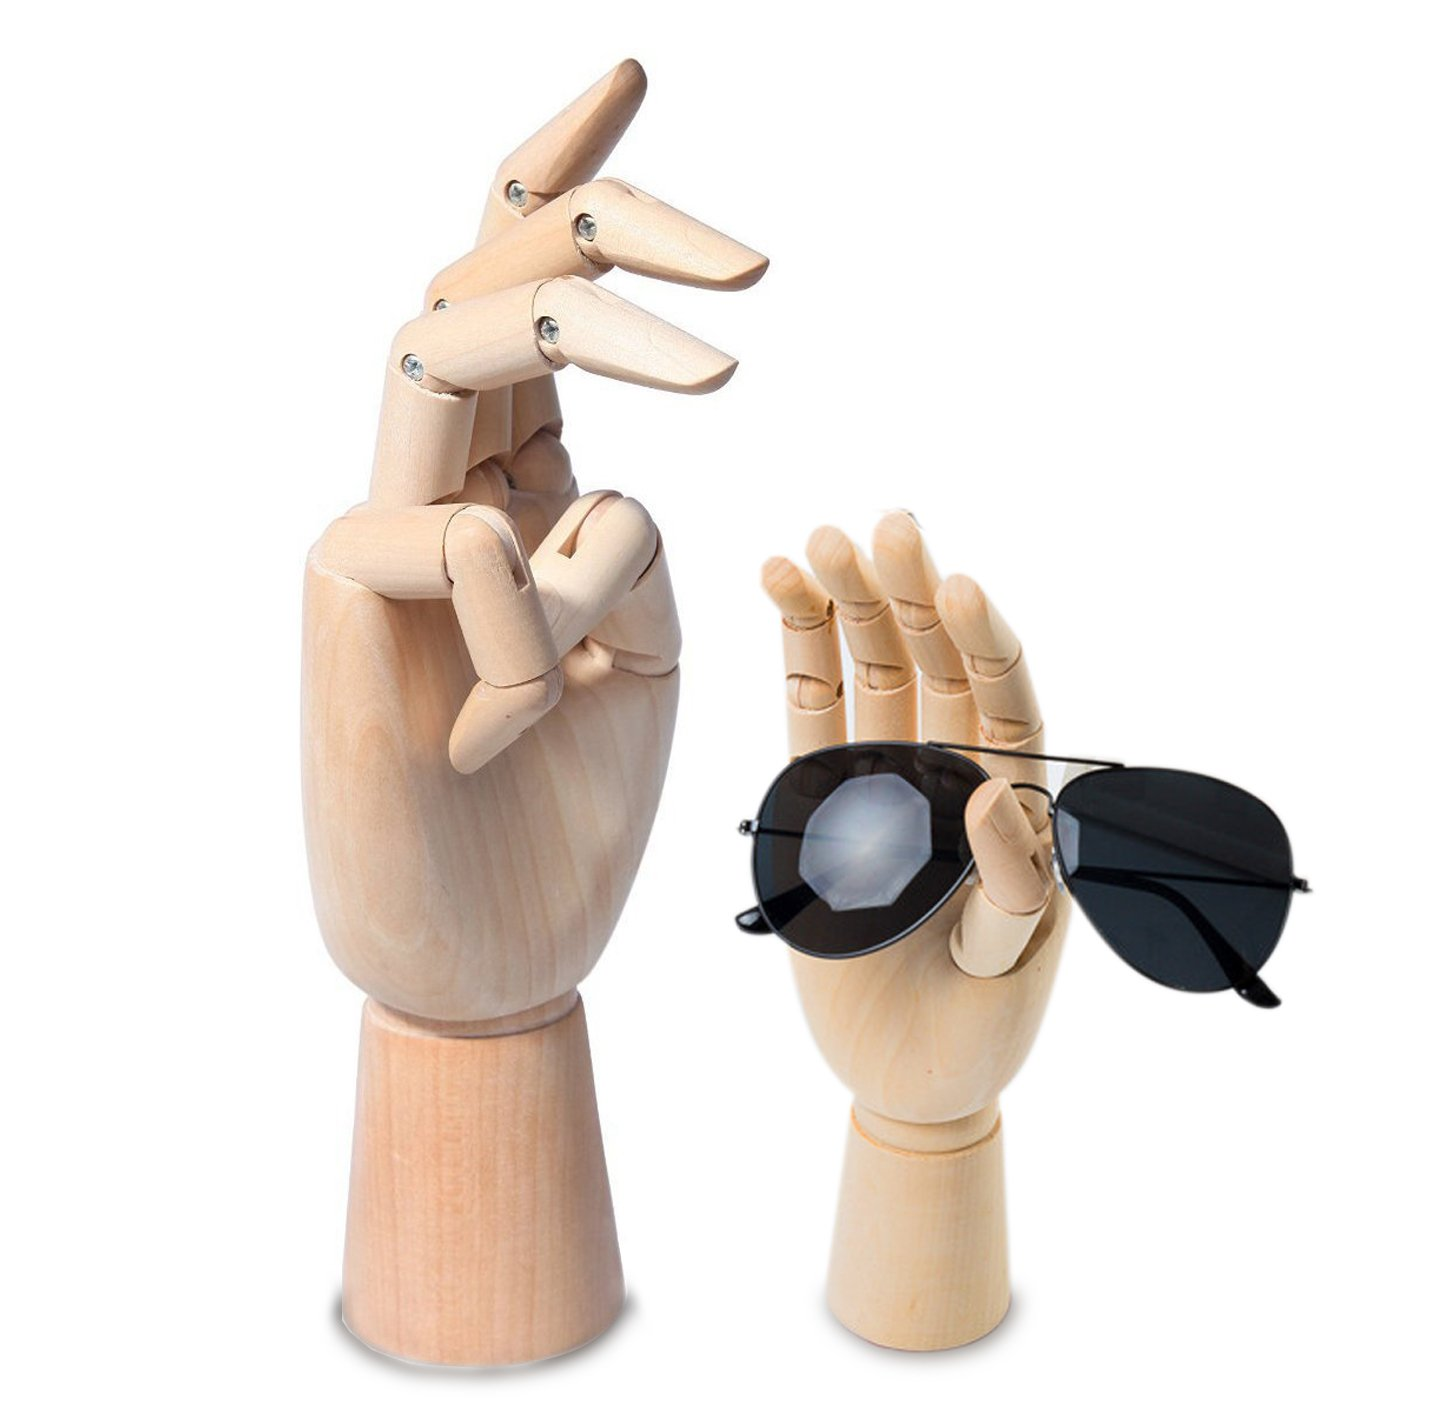 2 Assorted Size Large /& Small Wooden Hand Artist Drawing Manikin Joint Mannequin